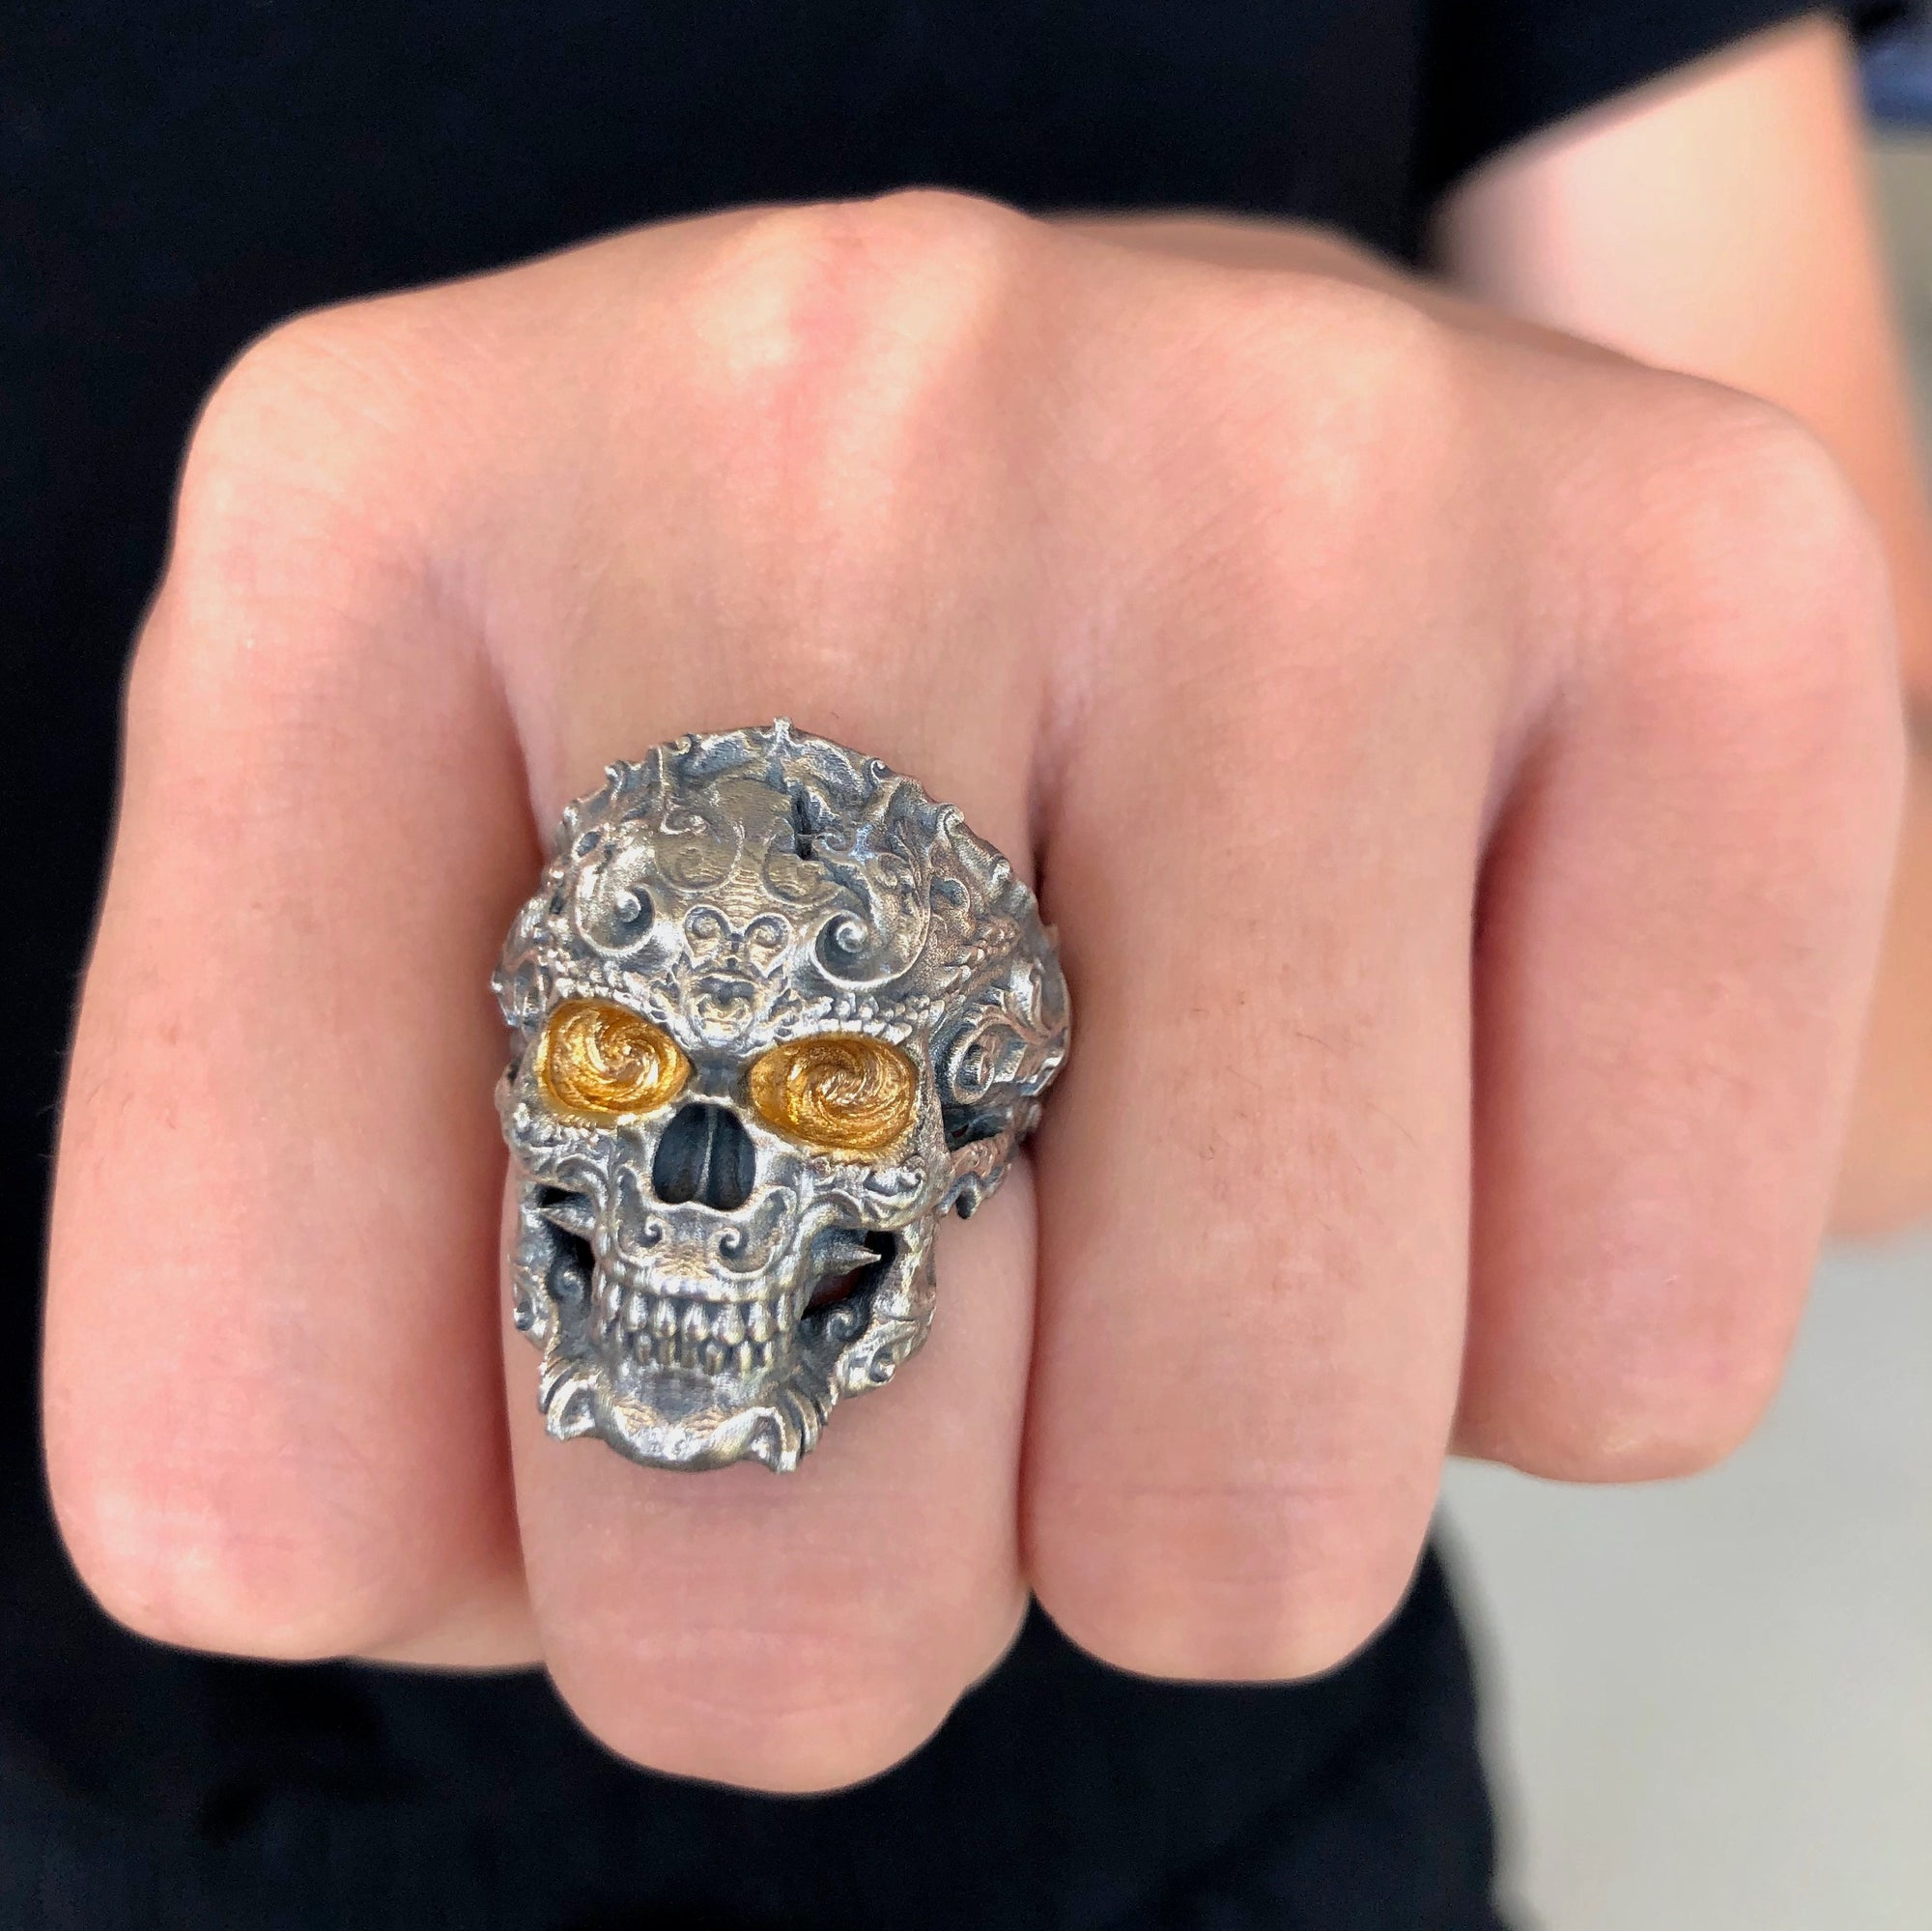 Skull 3D Sterling Silver and Yellow Gold Ring by Geoff Thomas - Talisman Collection Fine Jewelers